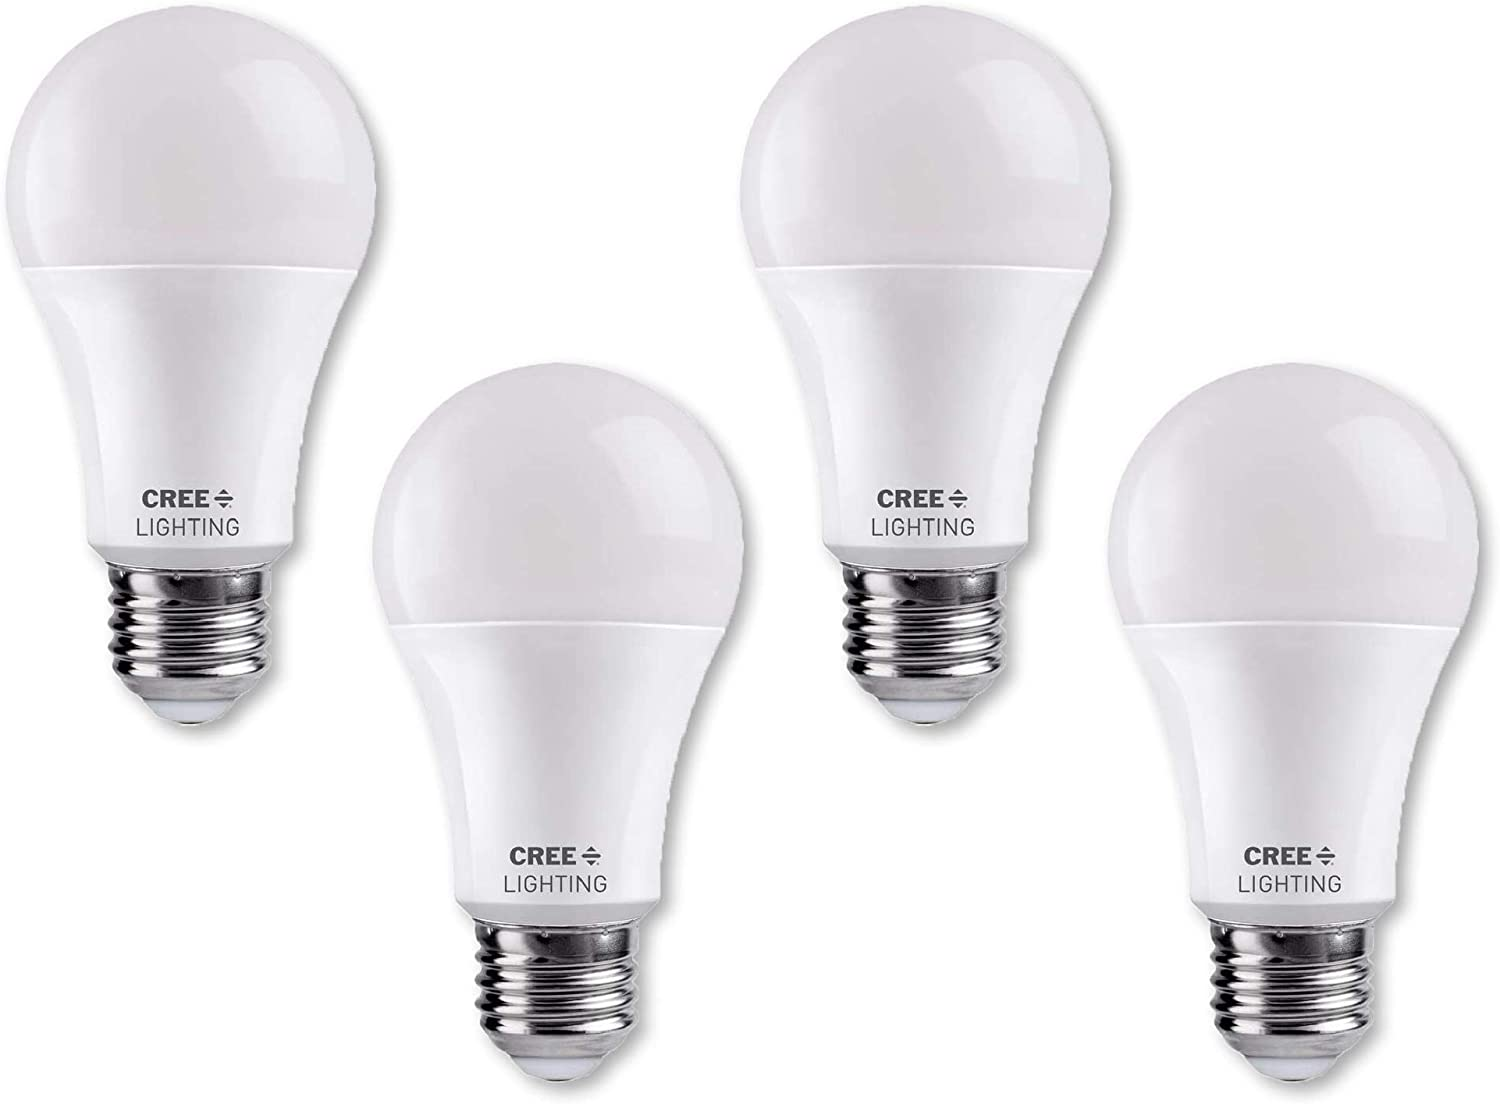 Cree Lighting, TA21-20050MDFH25-12DE26-1-11006S-T, A21 125W Equivalent LED Bulb, 2000 lumens, Dimmable, Daylight 5000K, 25,000 hour rated life, 90+ CRI | 4-Pack